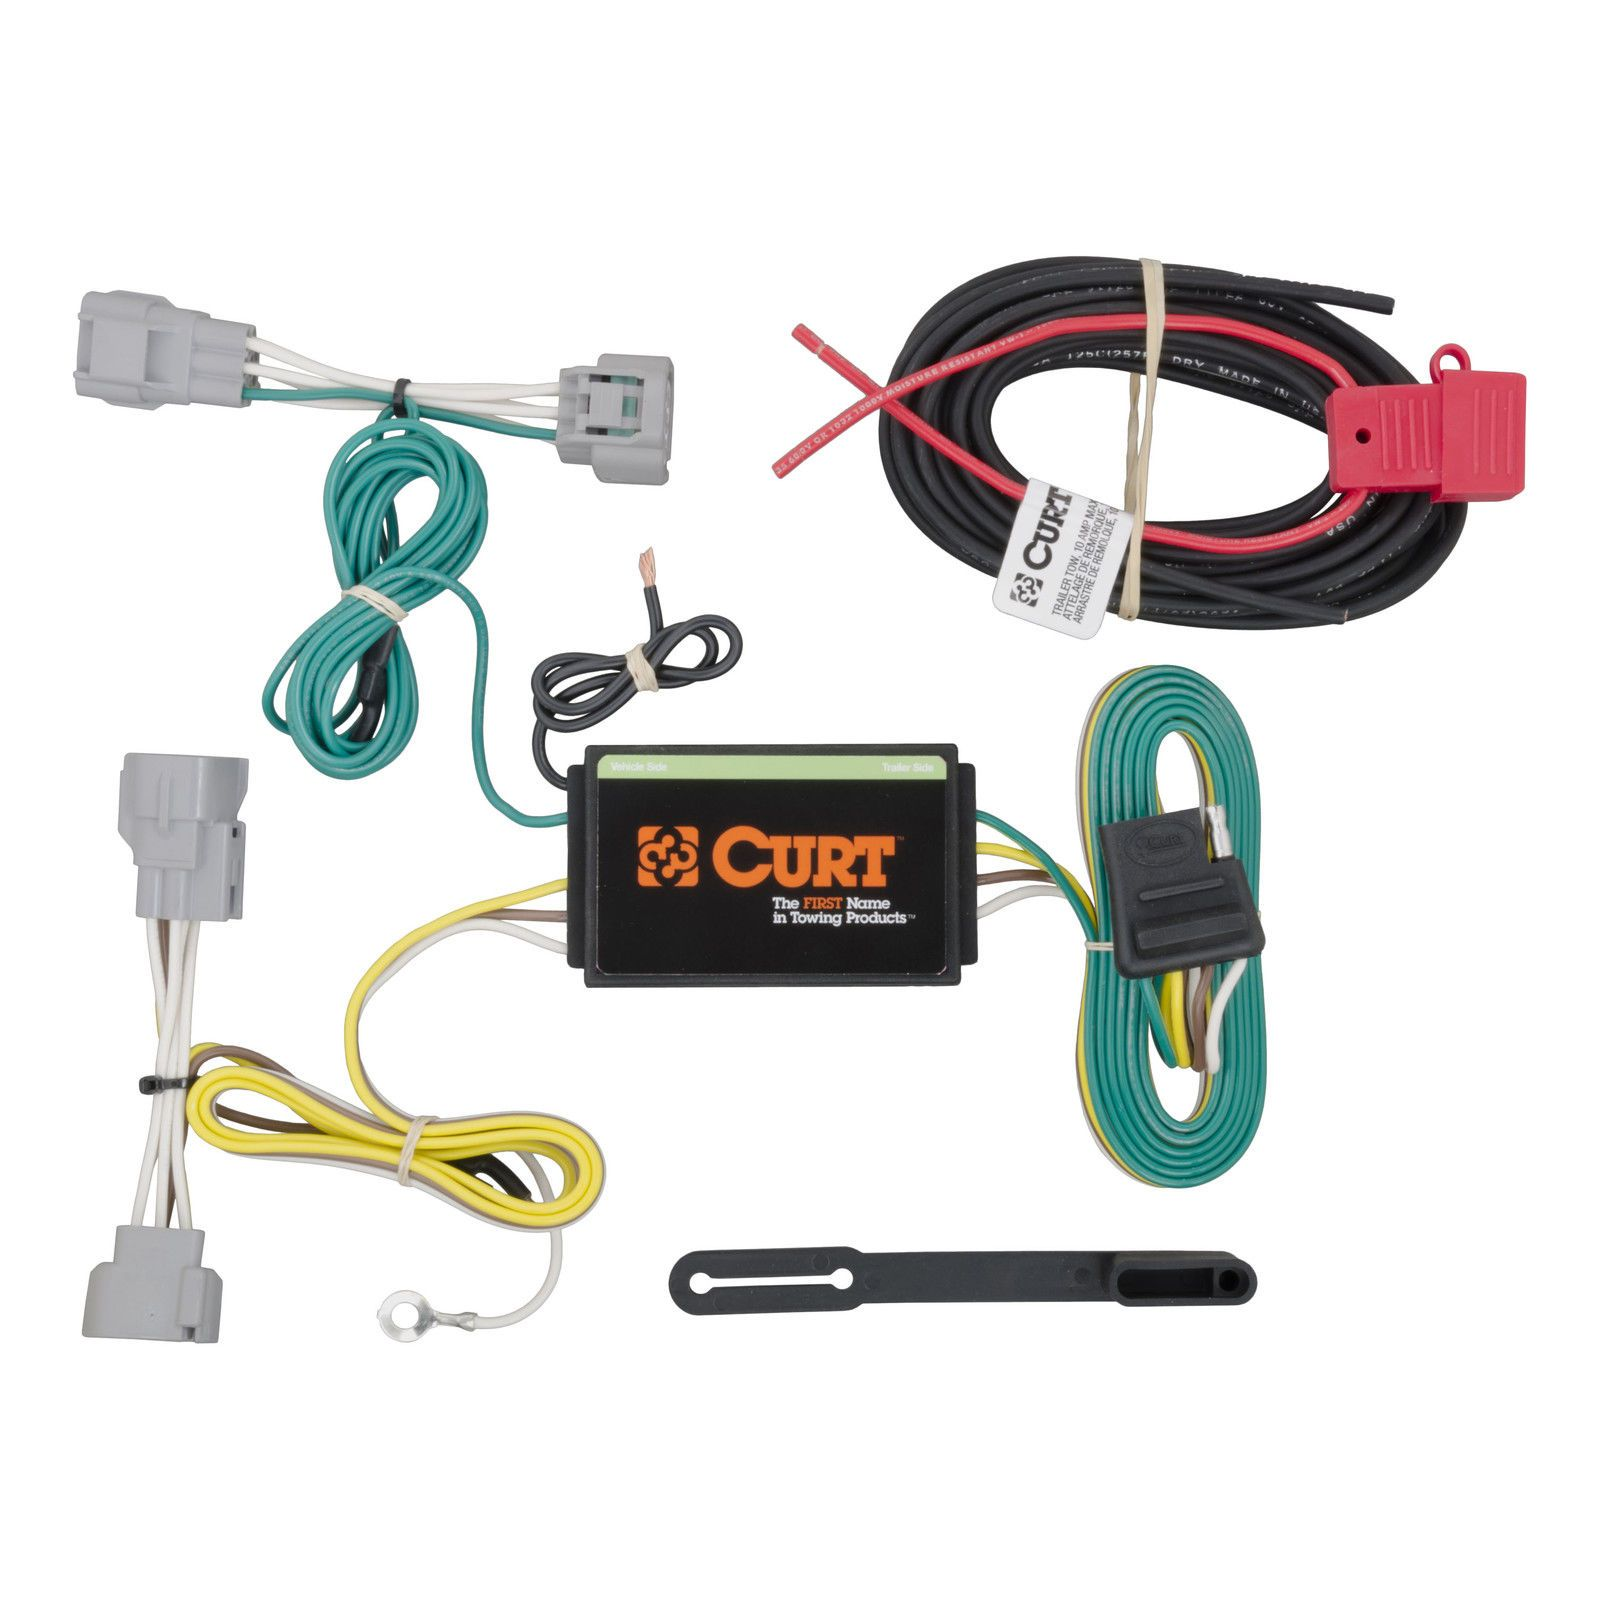 hight resolution of curt custom vehicle to trailer wiring harness 56208 for 2014 2016 jeep cherokee